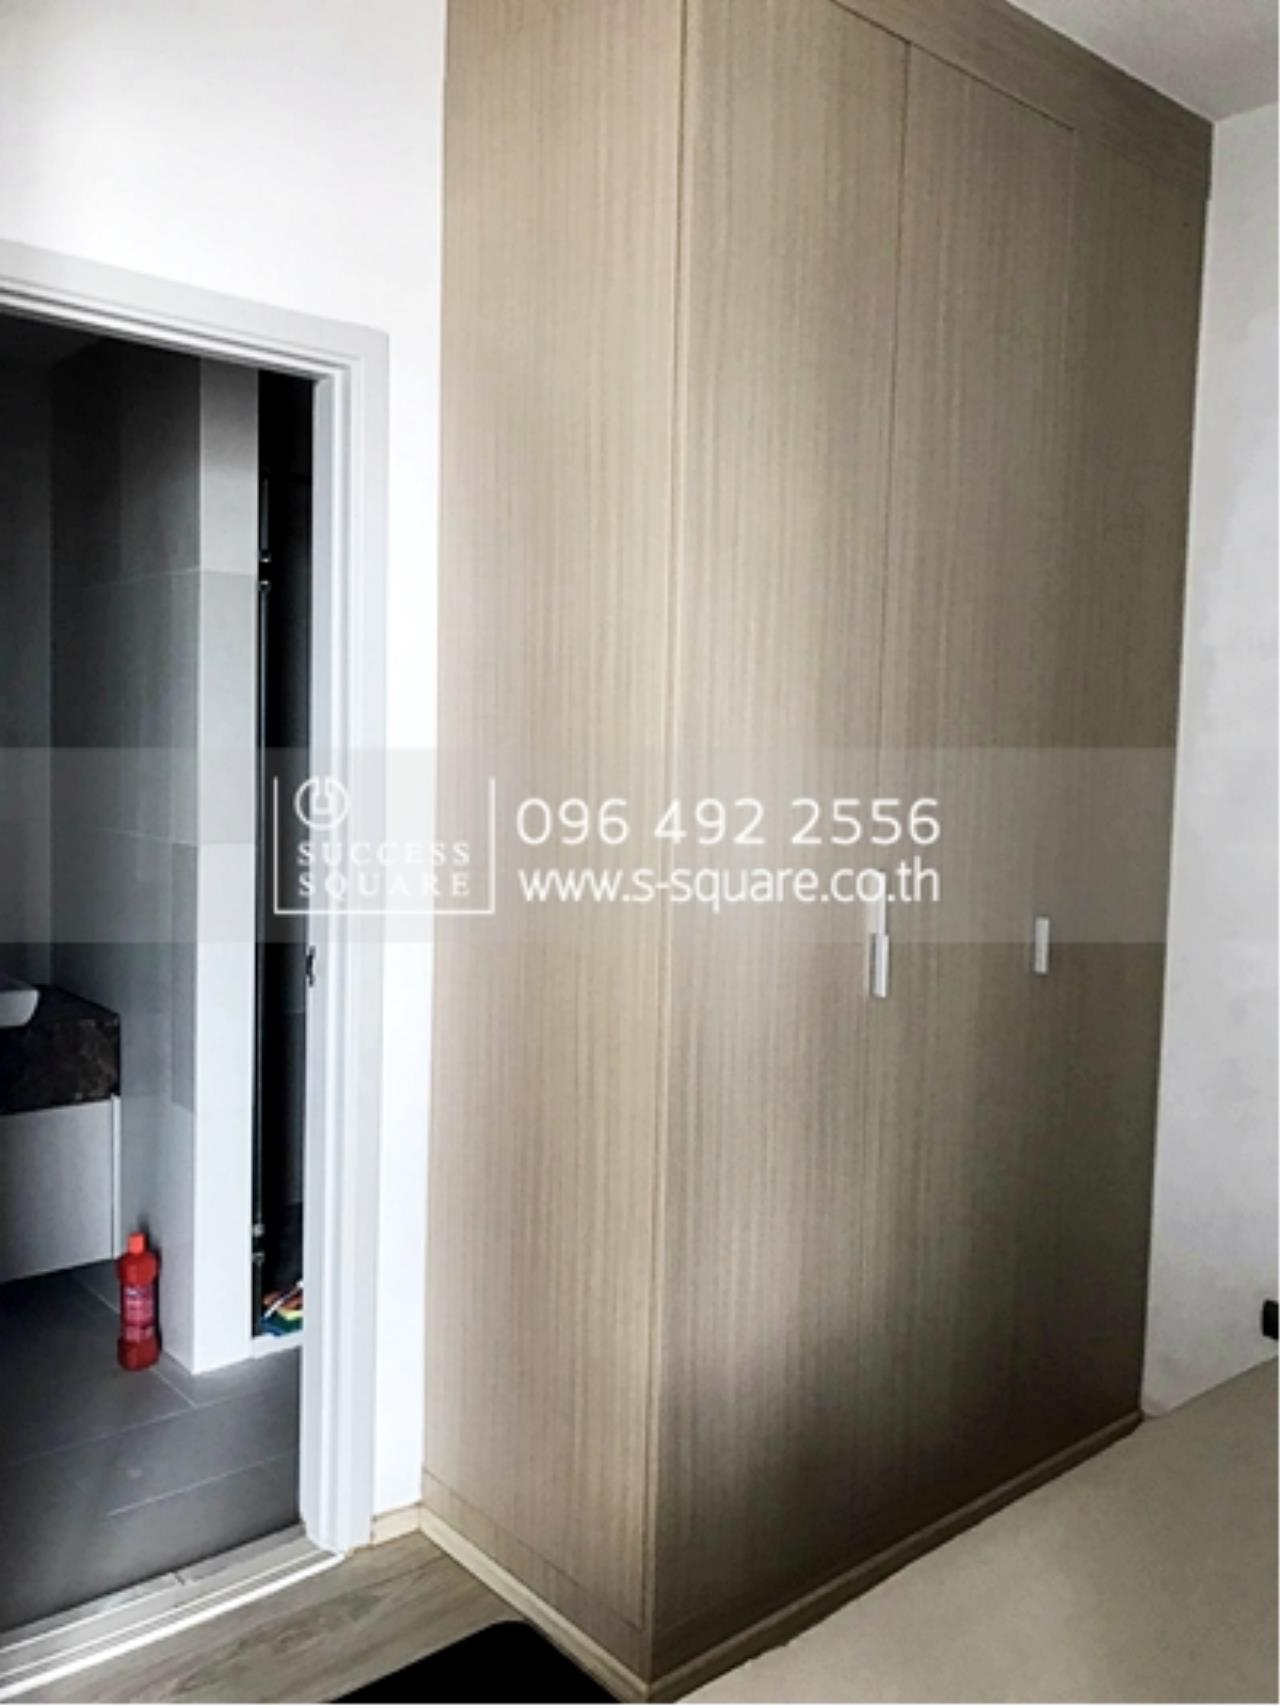 Success Square Agency's Fuse Sathorn-Taksin, Condo For Rent  1